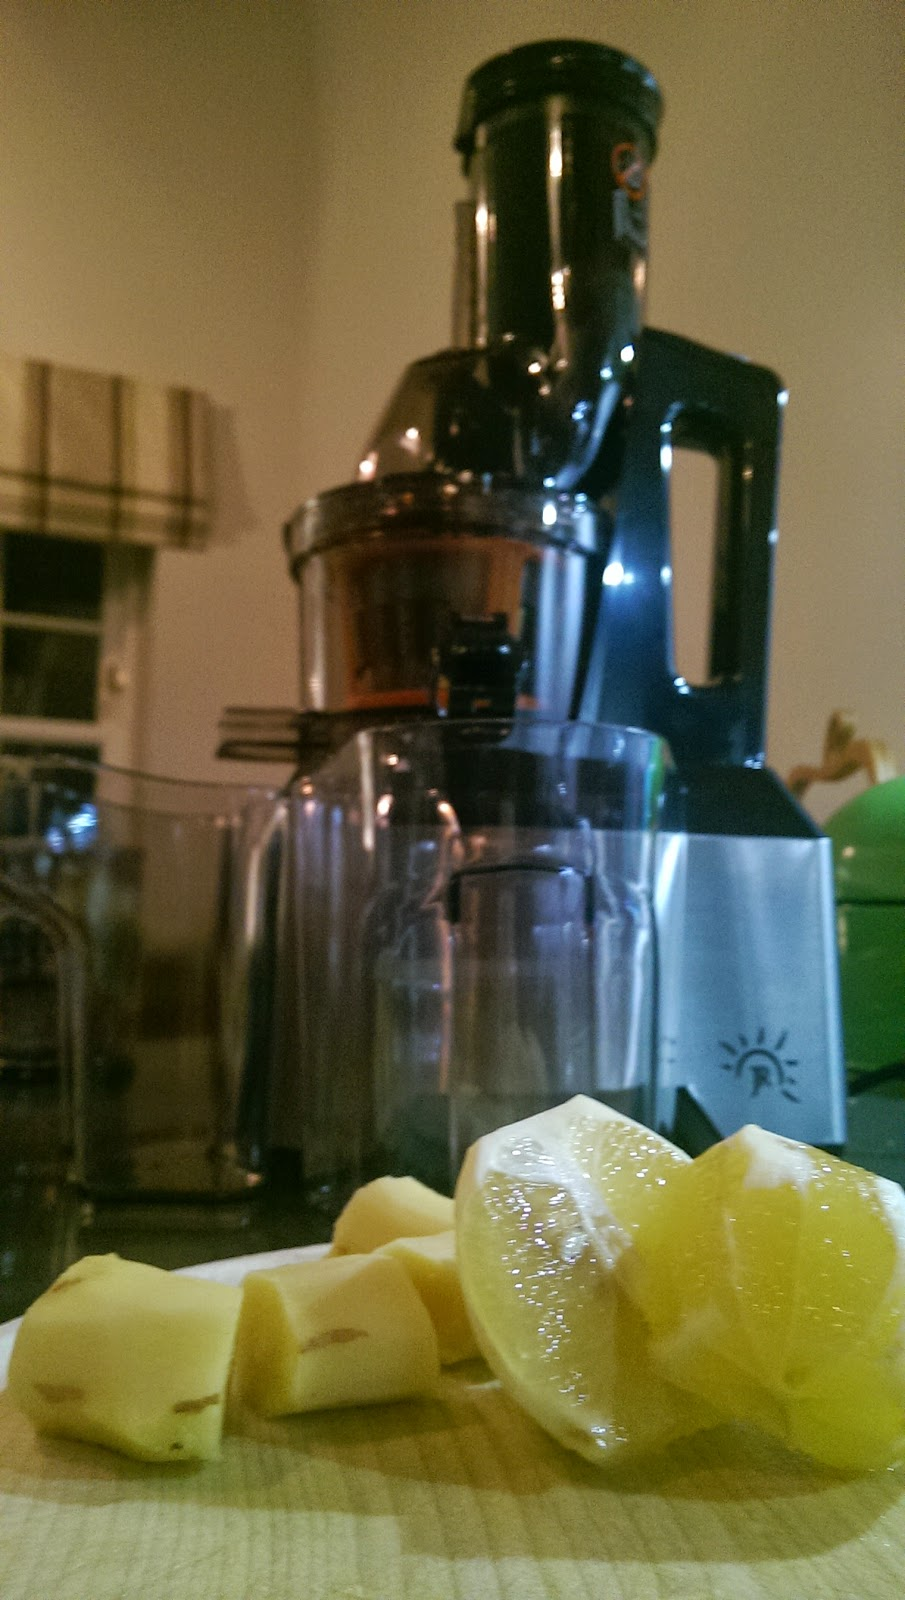 JR8000 Ultra Whole Slow Masticating Juicer Review by Fifi Friendly